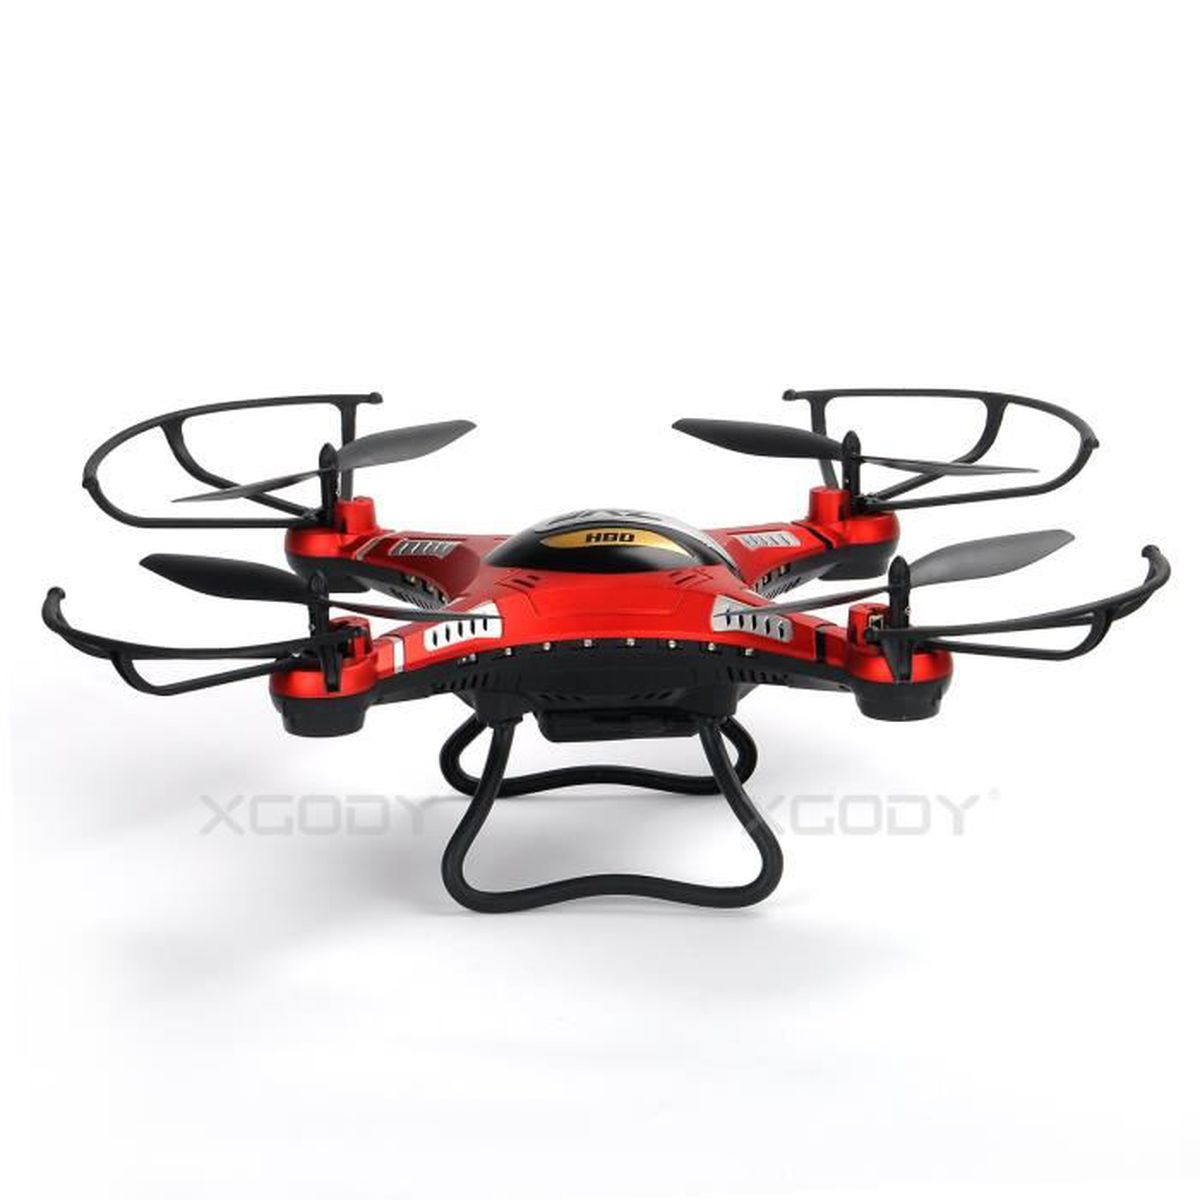 drone xgody jjrc h8dh quadcopter drone avec camera 2mp hd led fpv monitor rouge achat vente. Black Bedroom Furniture Sets. Home Design Ideas